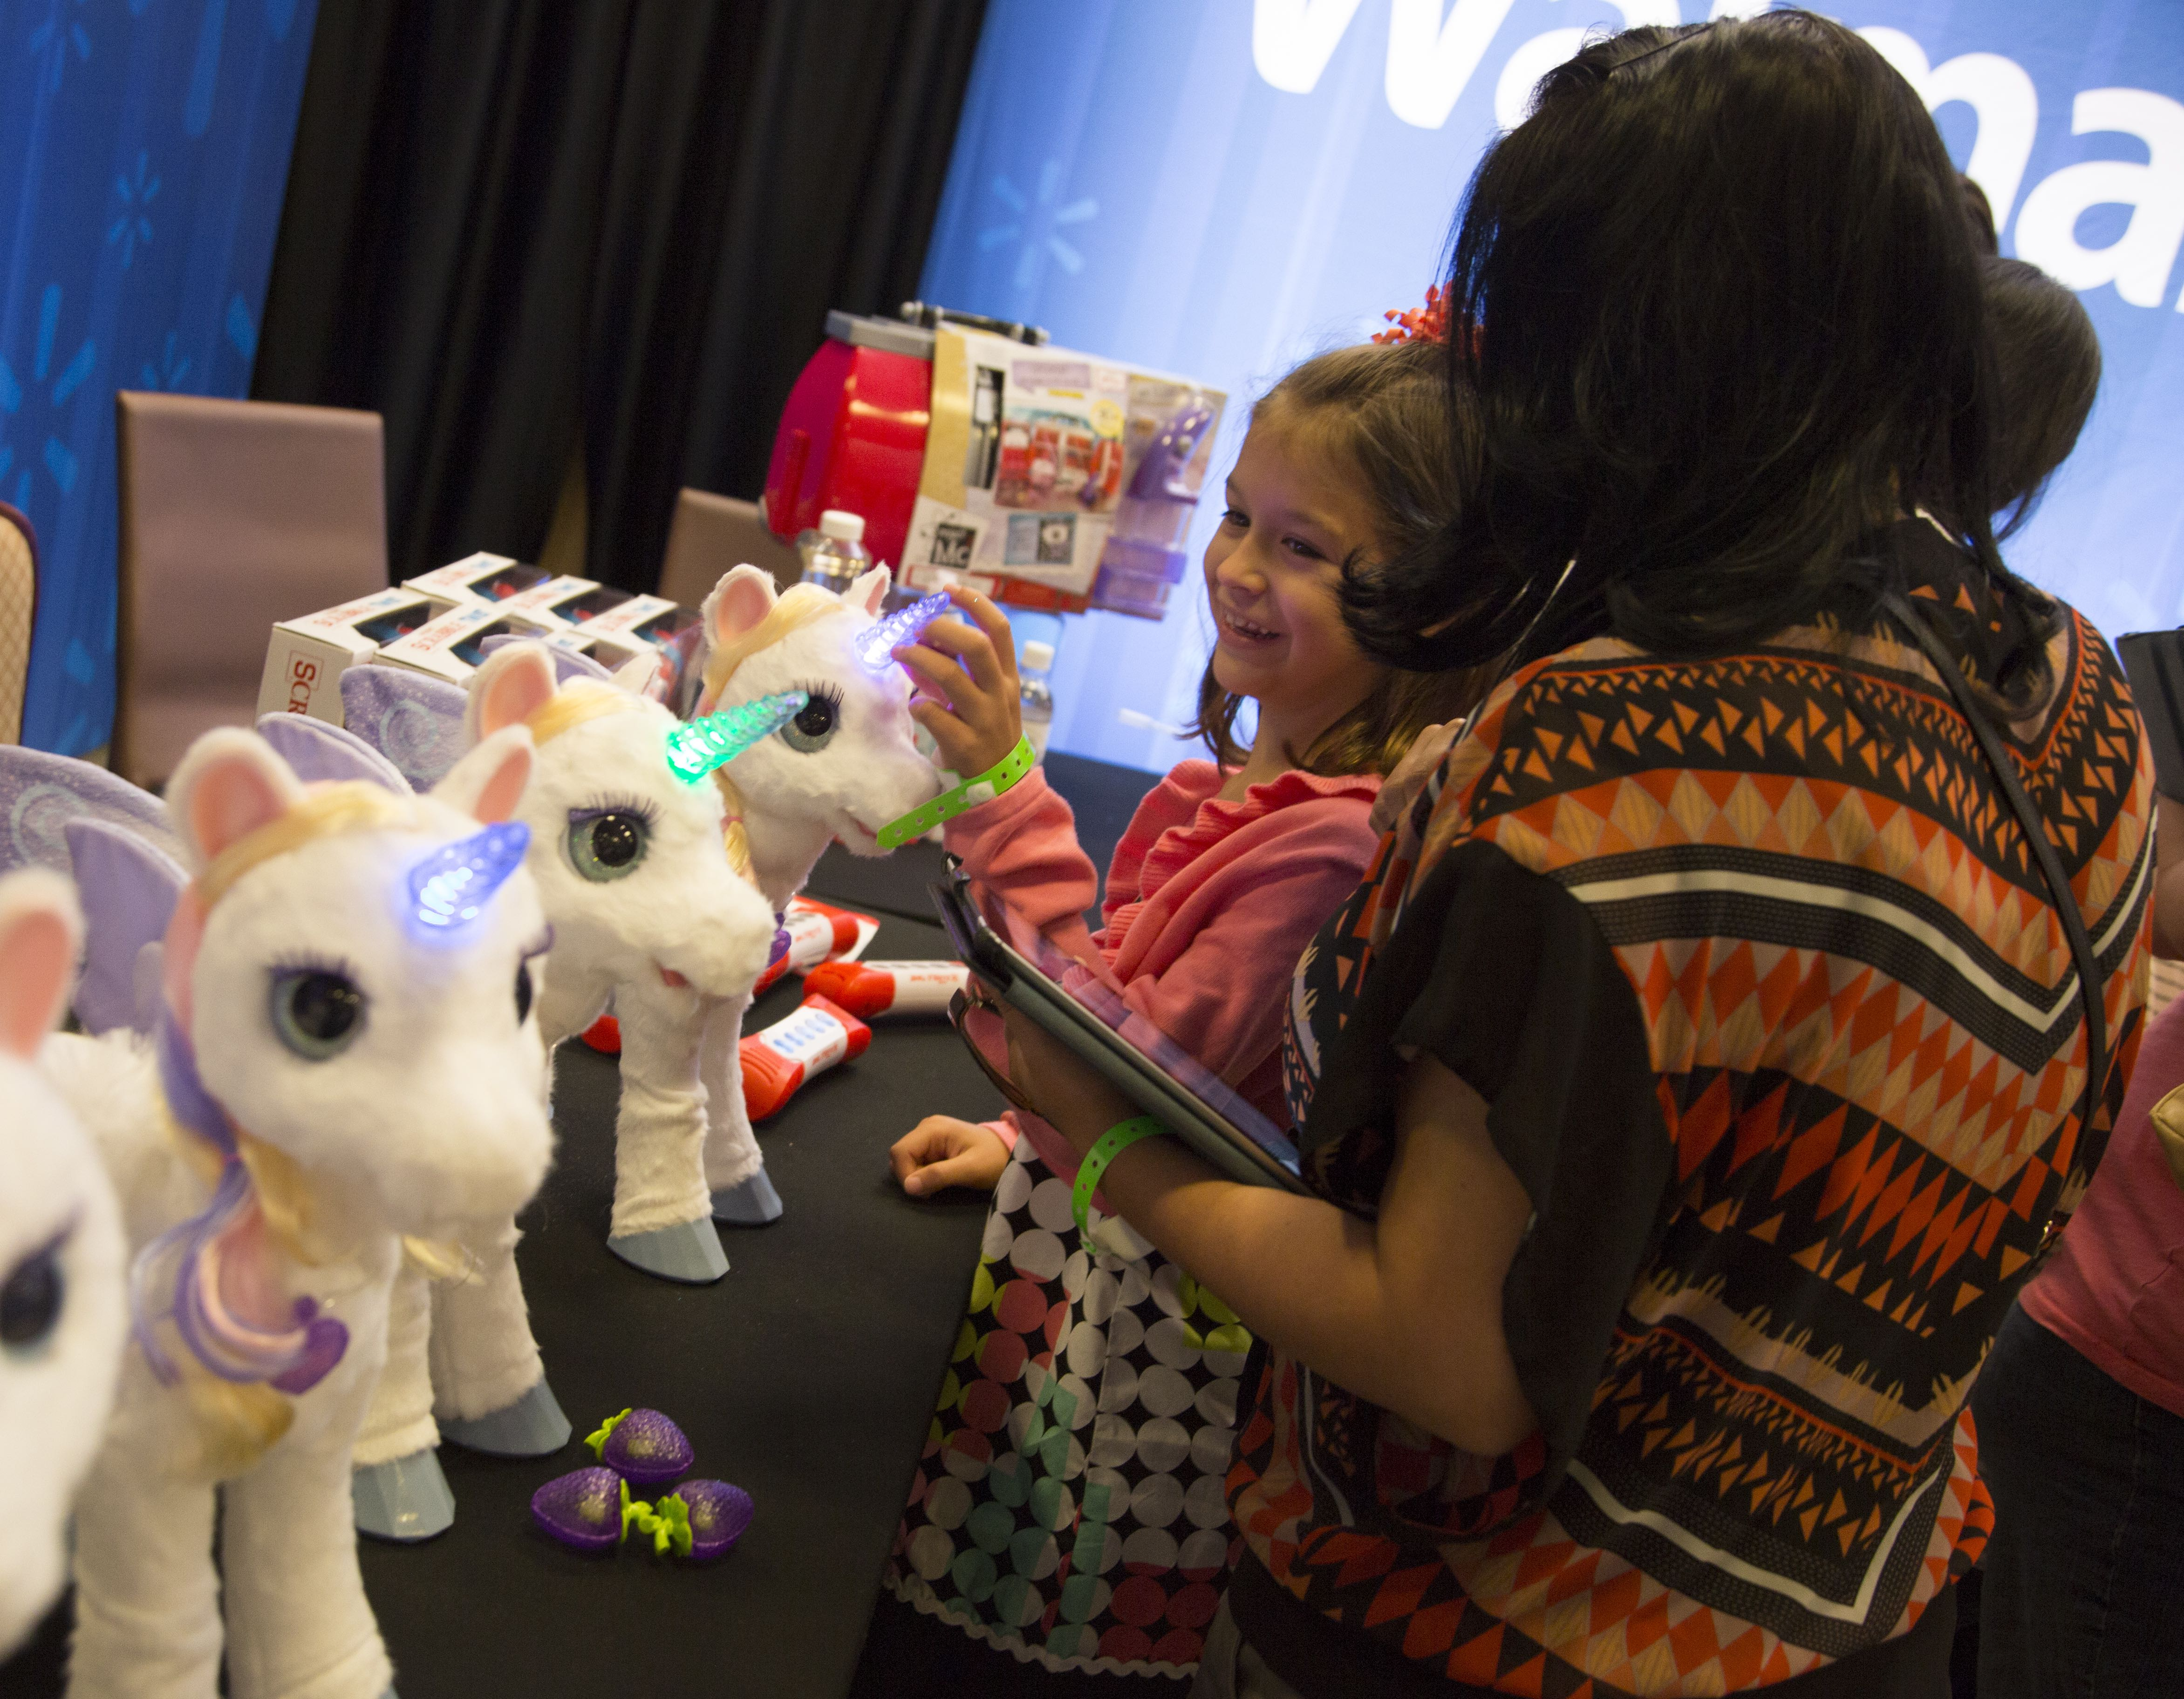 Walmart Toys For Girls : A young girl plays with the furreal unicorn toy